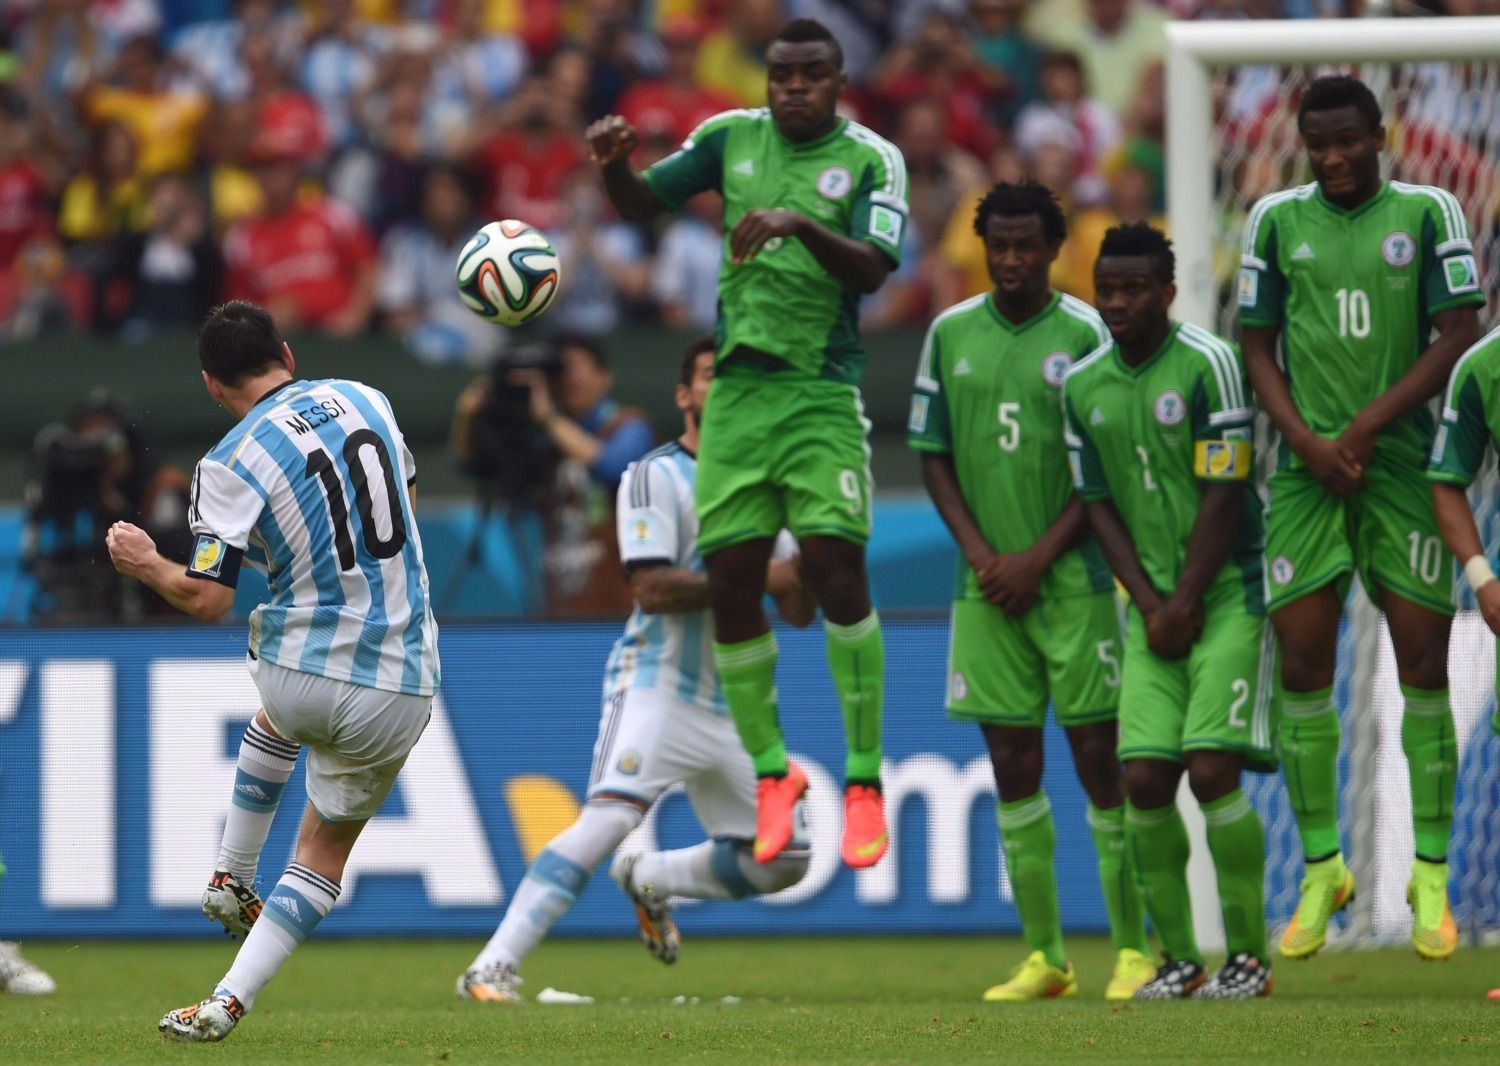 We love Lionel Messi but we're not here to watch him play, says Nigeria coach